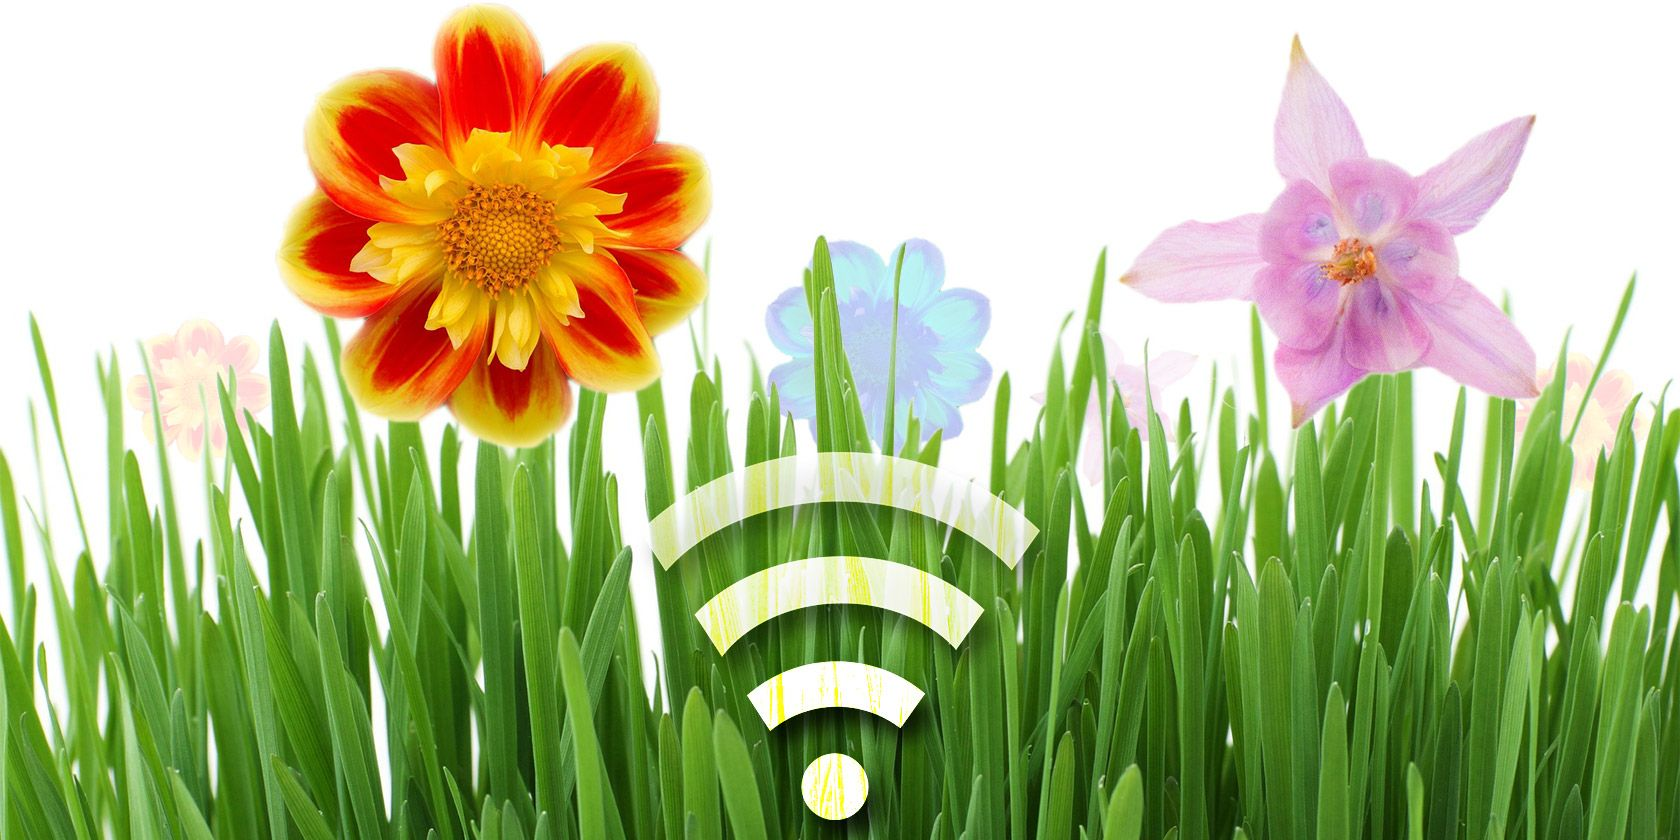 5 Smart Devices To Help Manage Your Garden #smartdevice